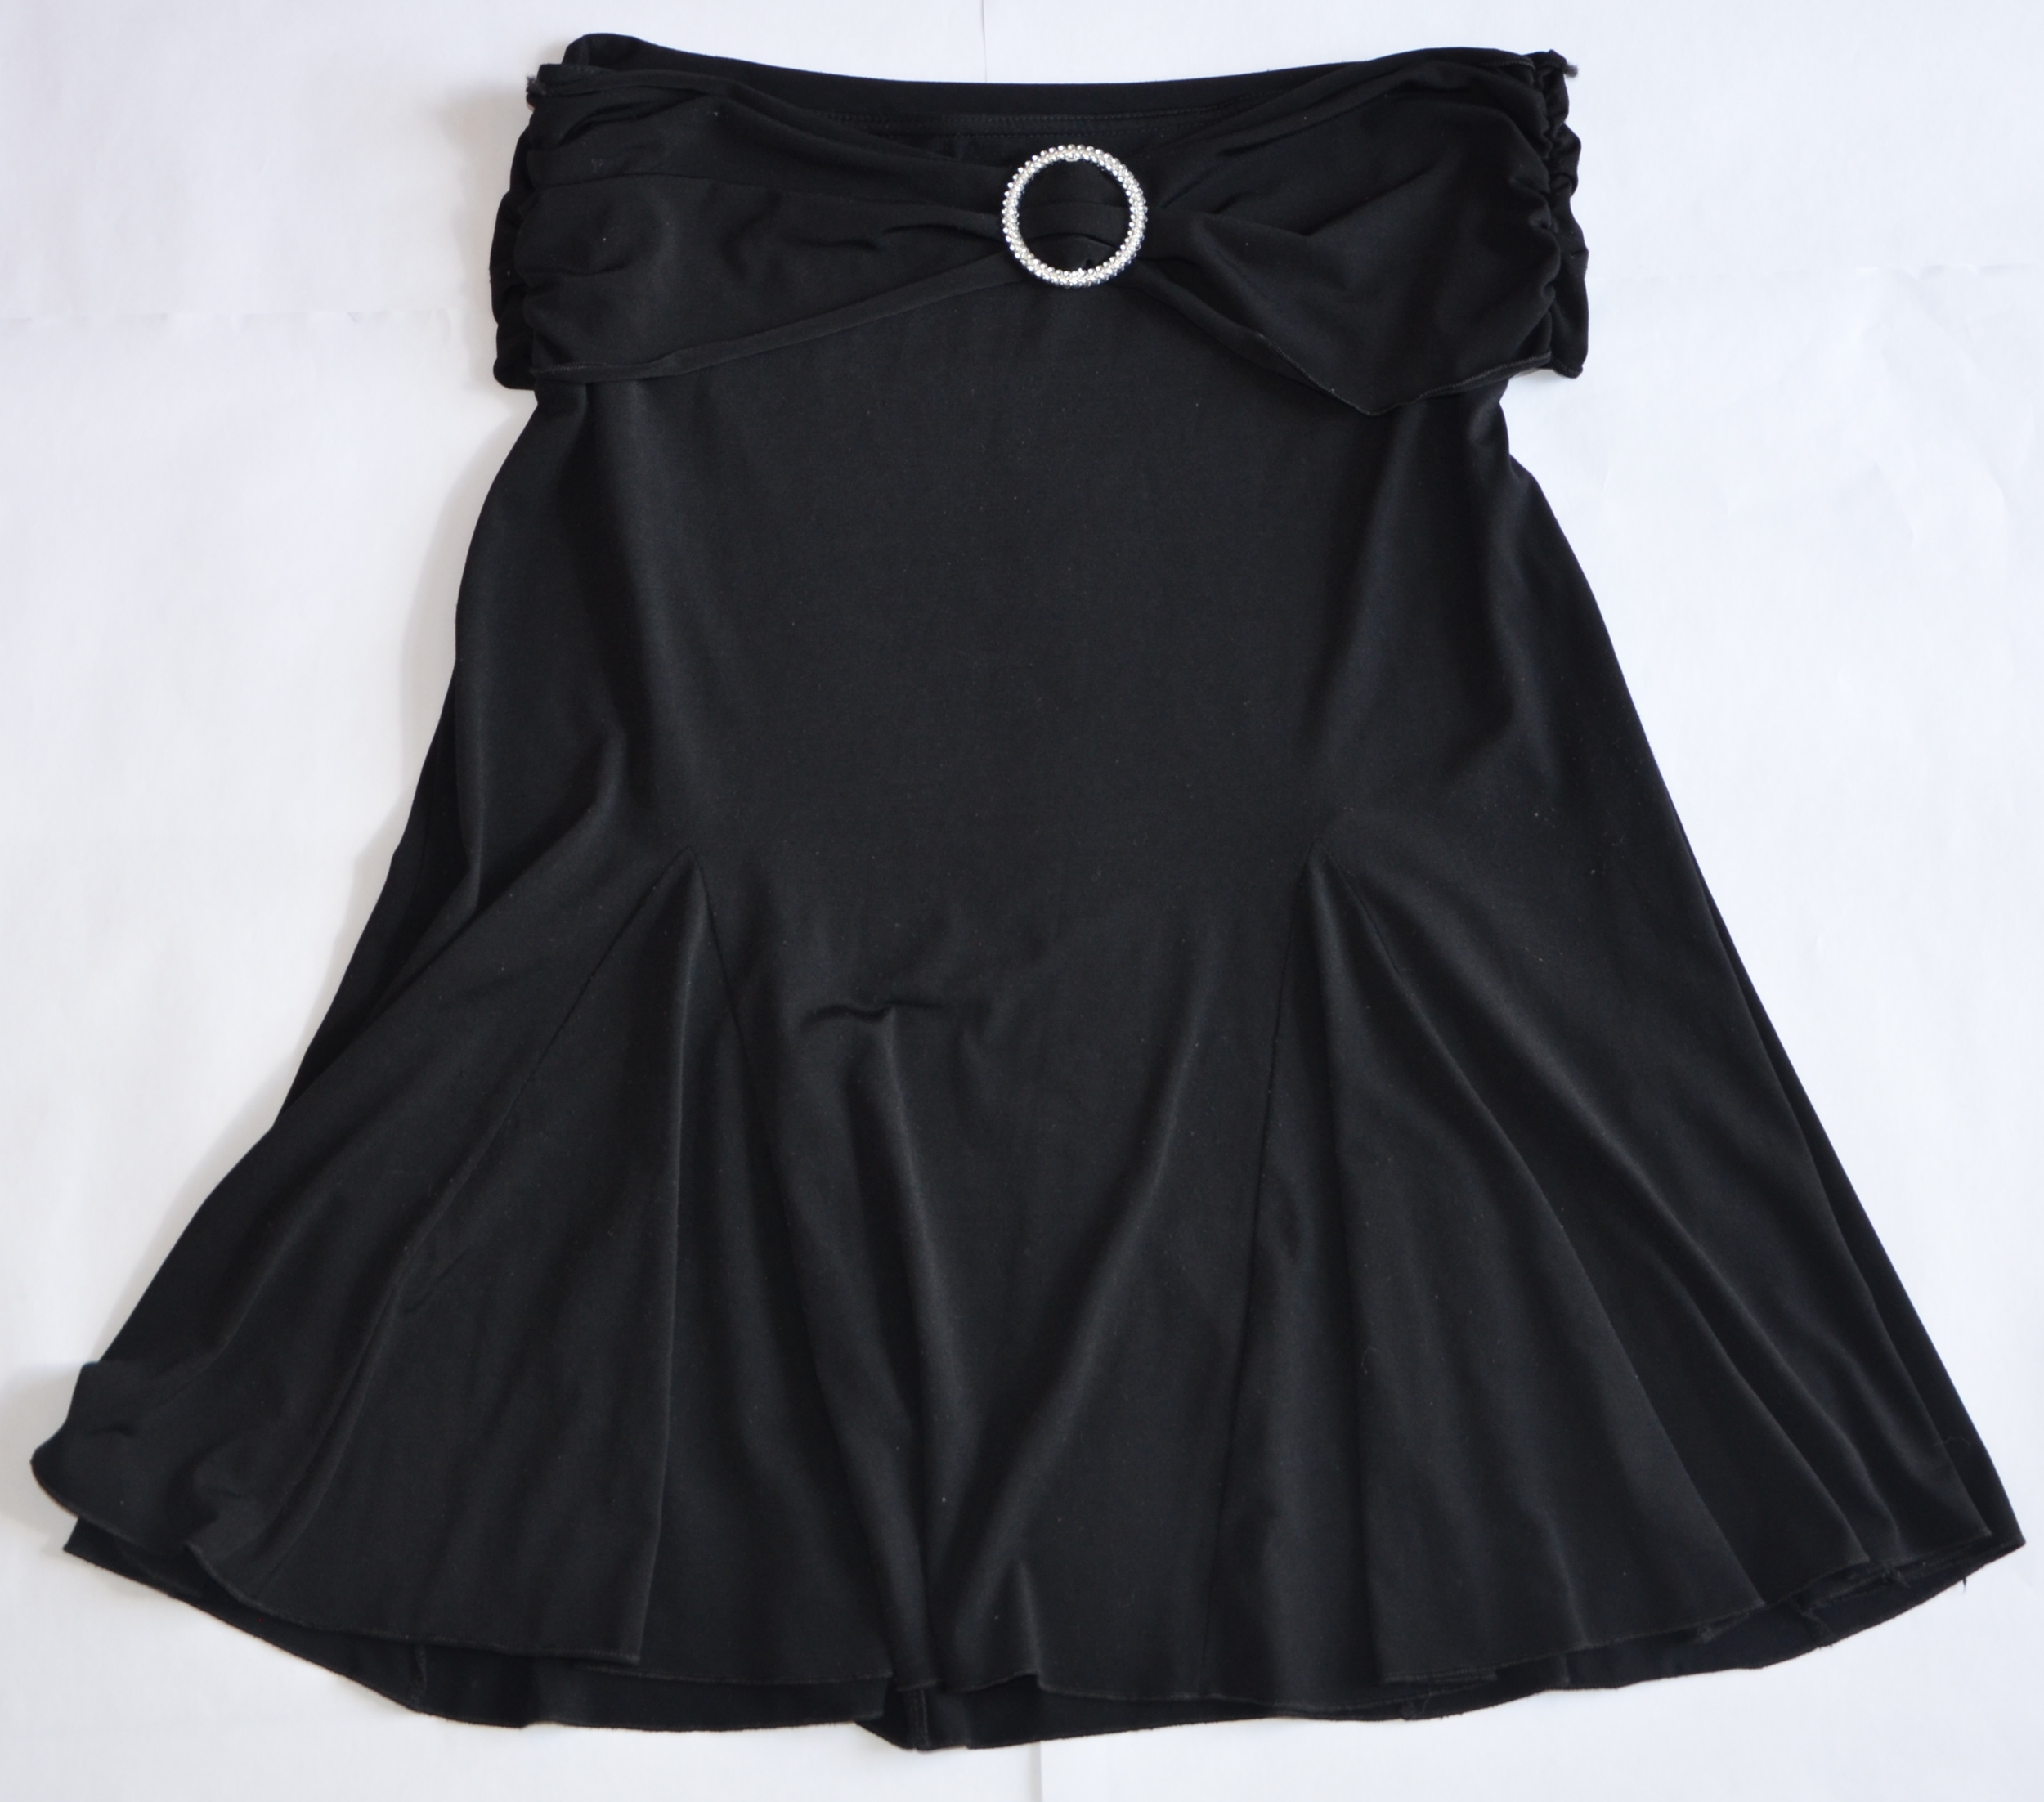 jupe femme taille 2 noir occasion